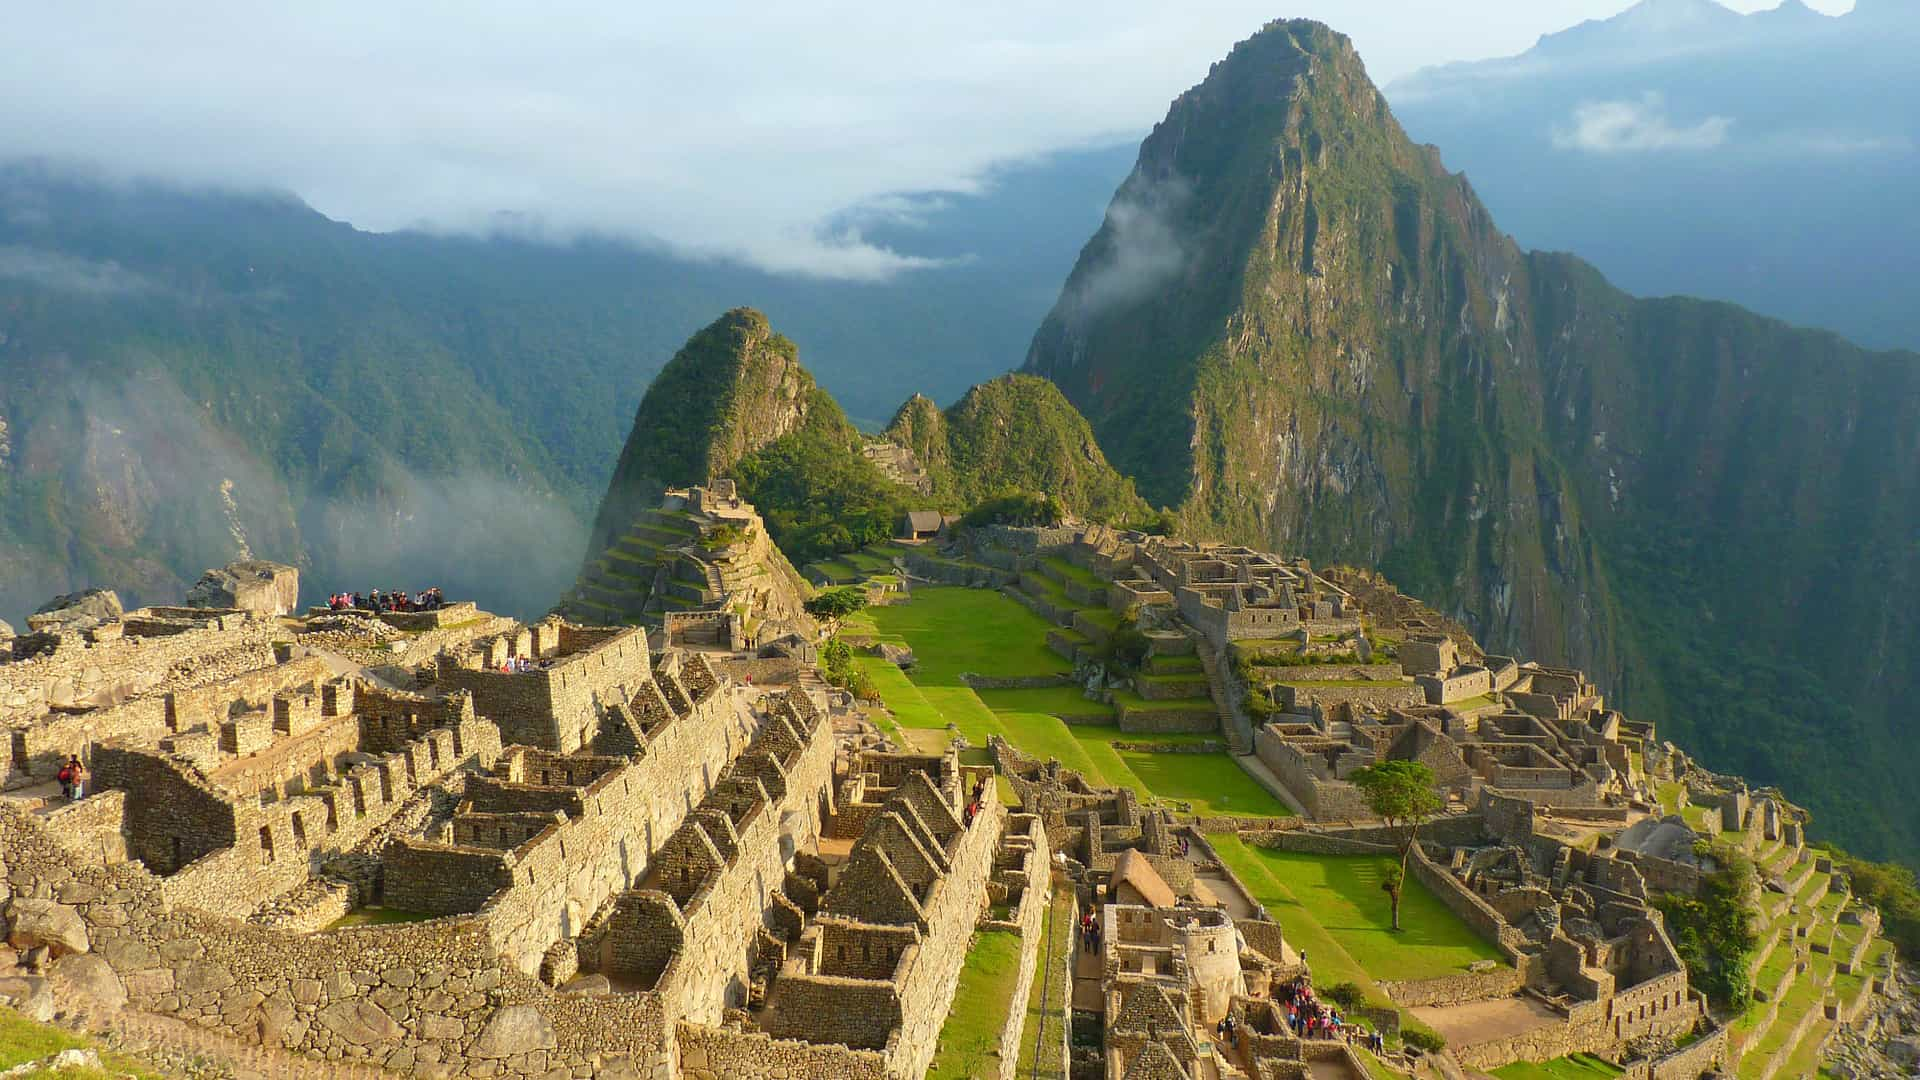 Overlooking Machu Picchu in the mountains of Peru